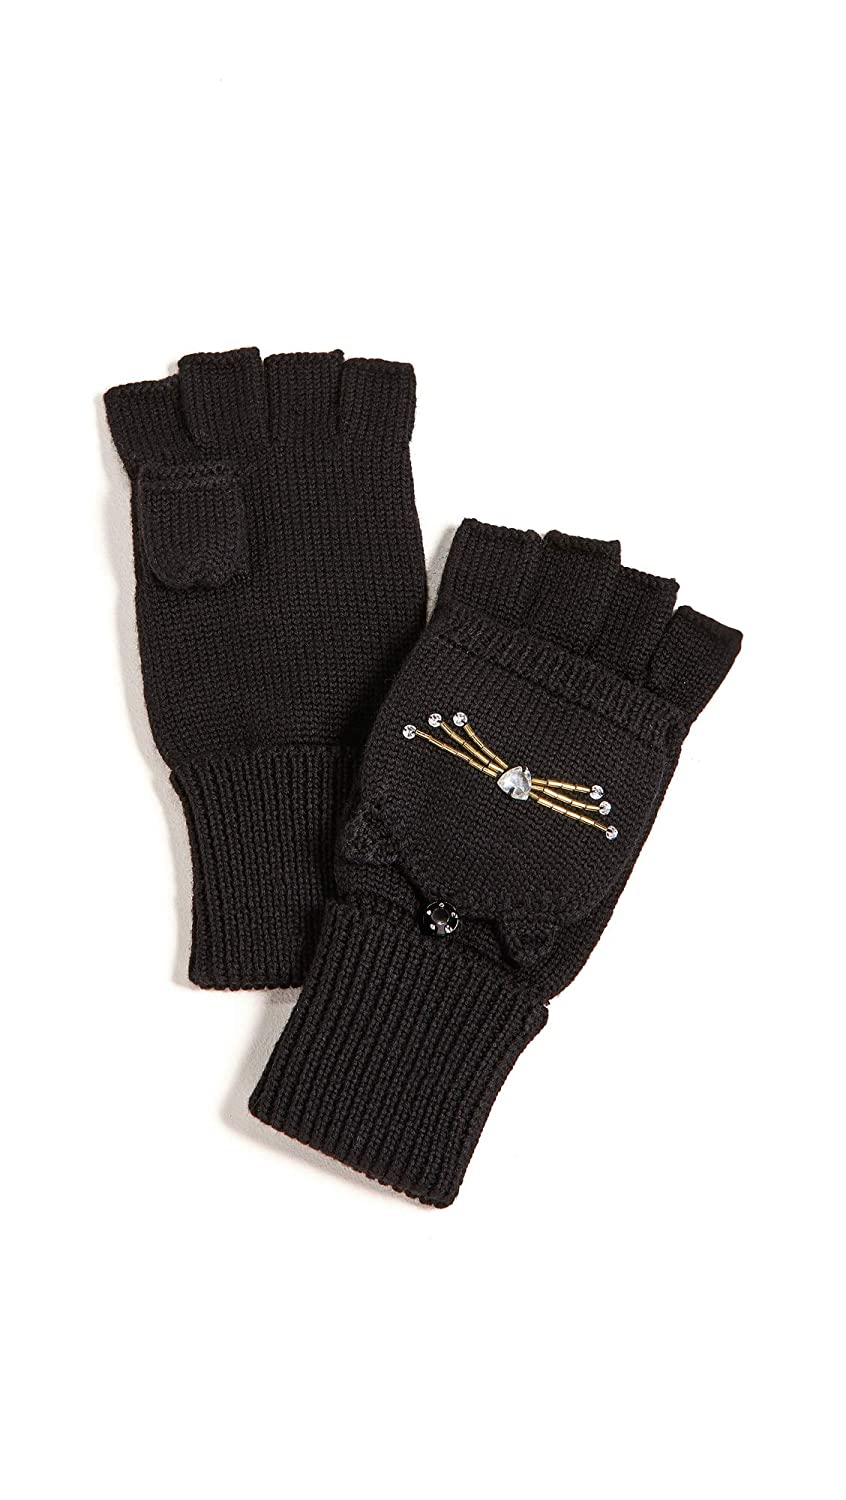 Kate Spade New York Women's Embellished Cat Pop Top Mittens Black One Size